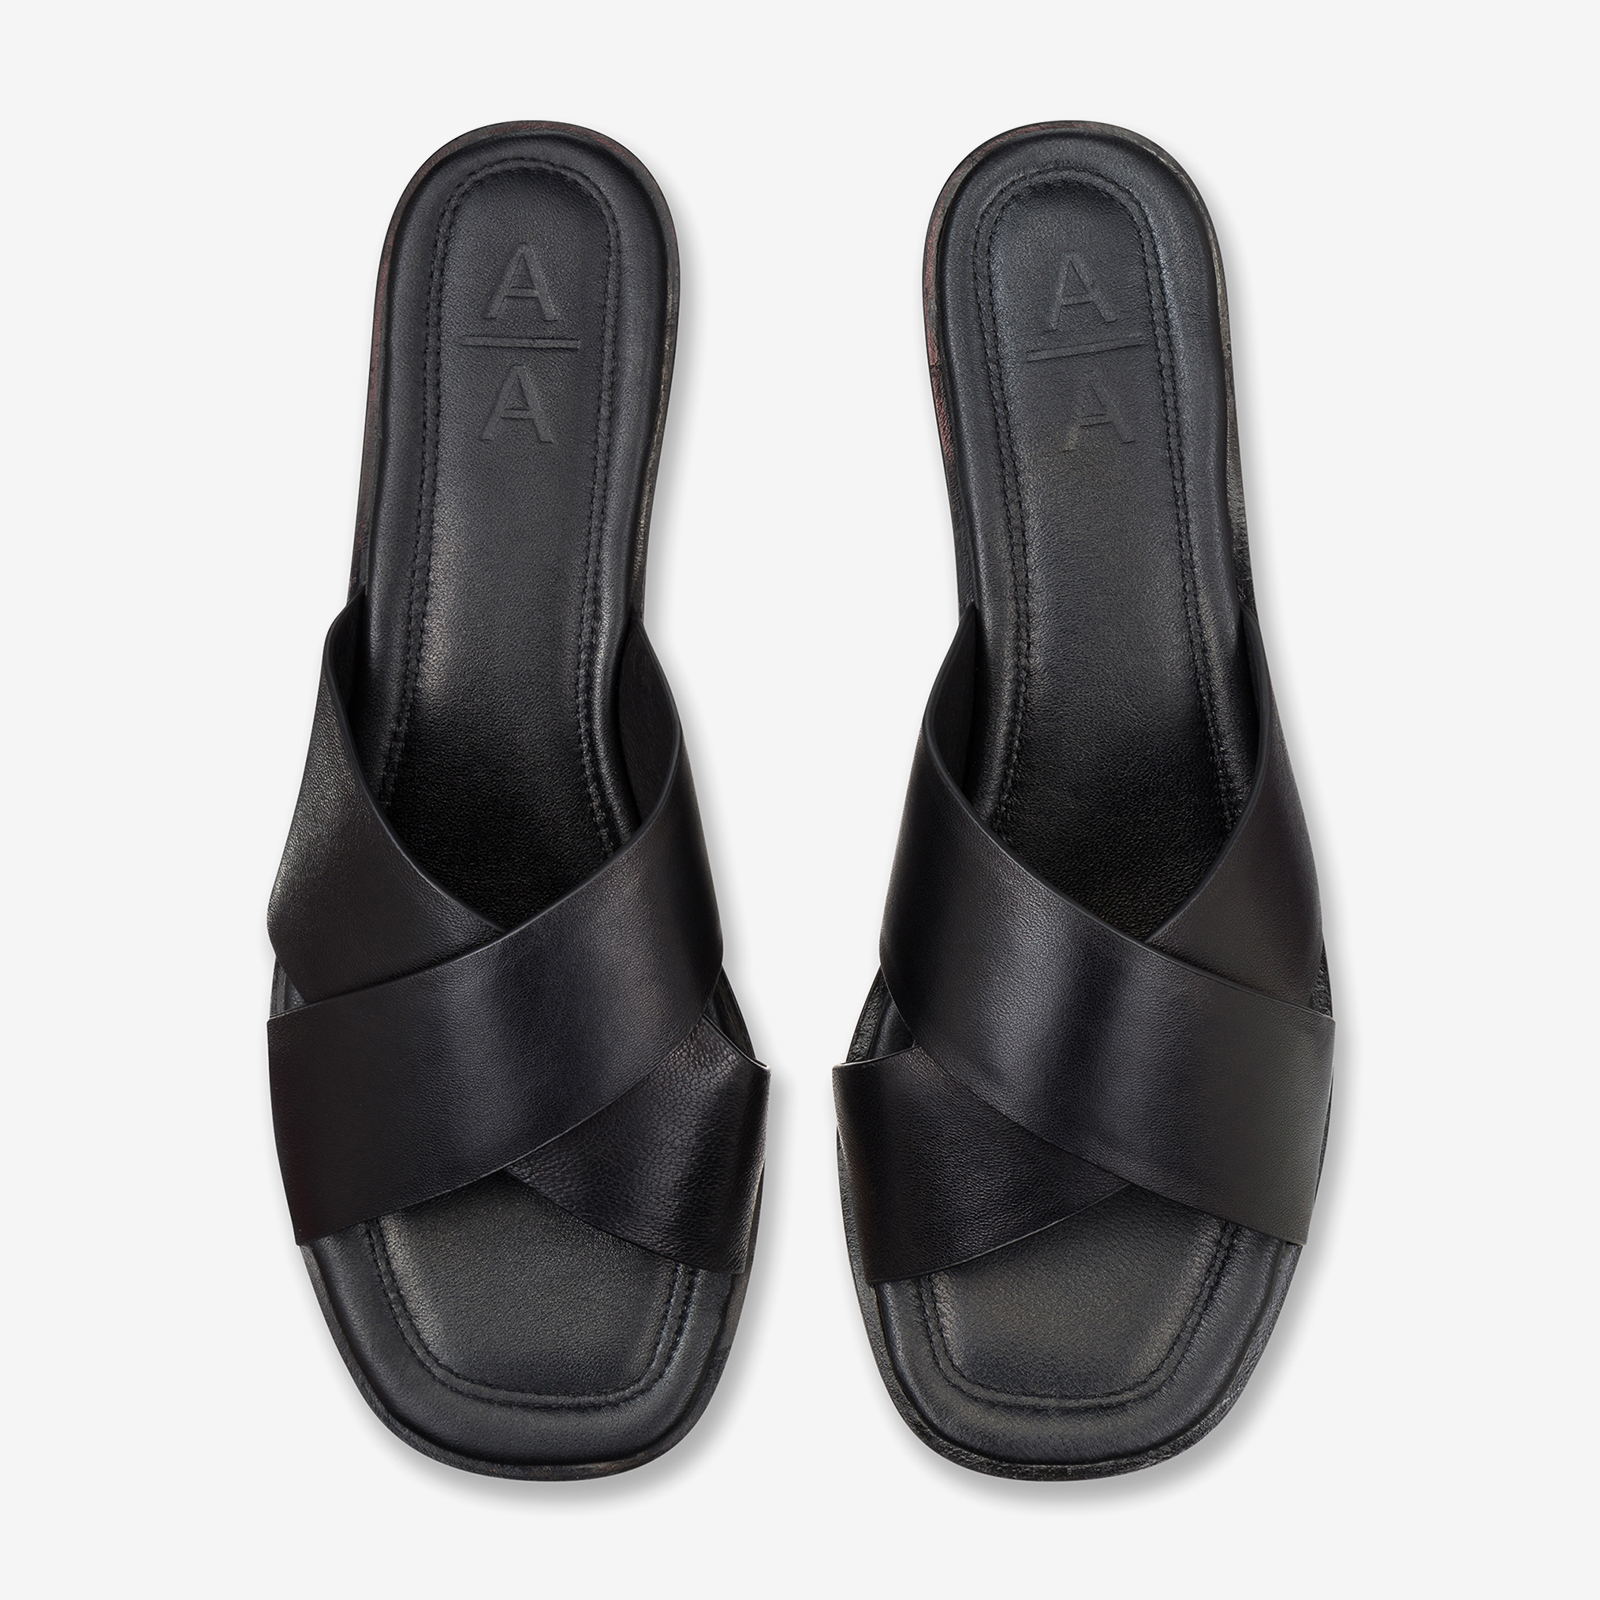 Sandals product picture